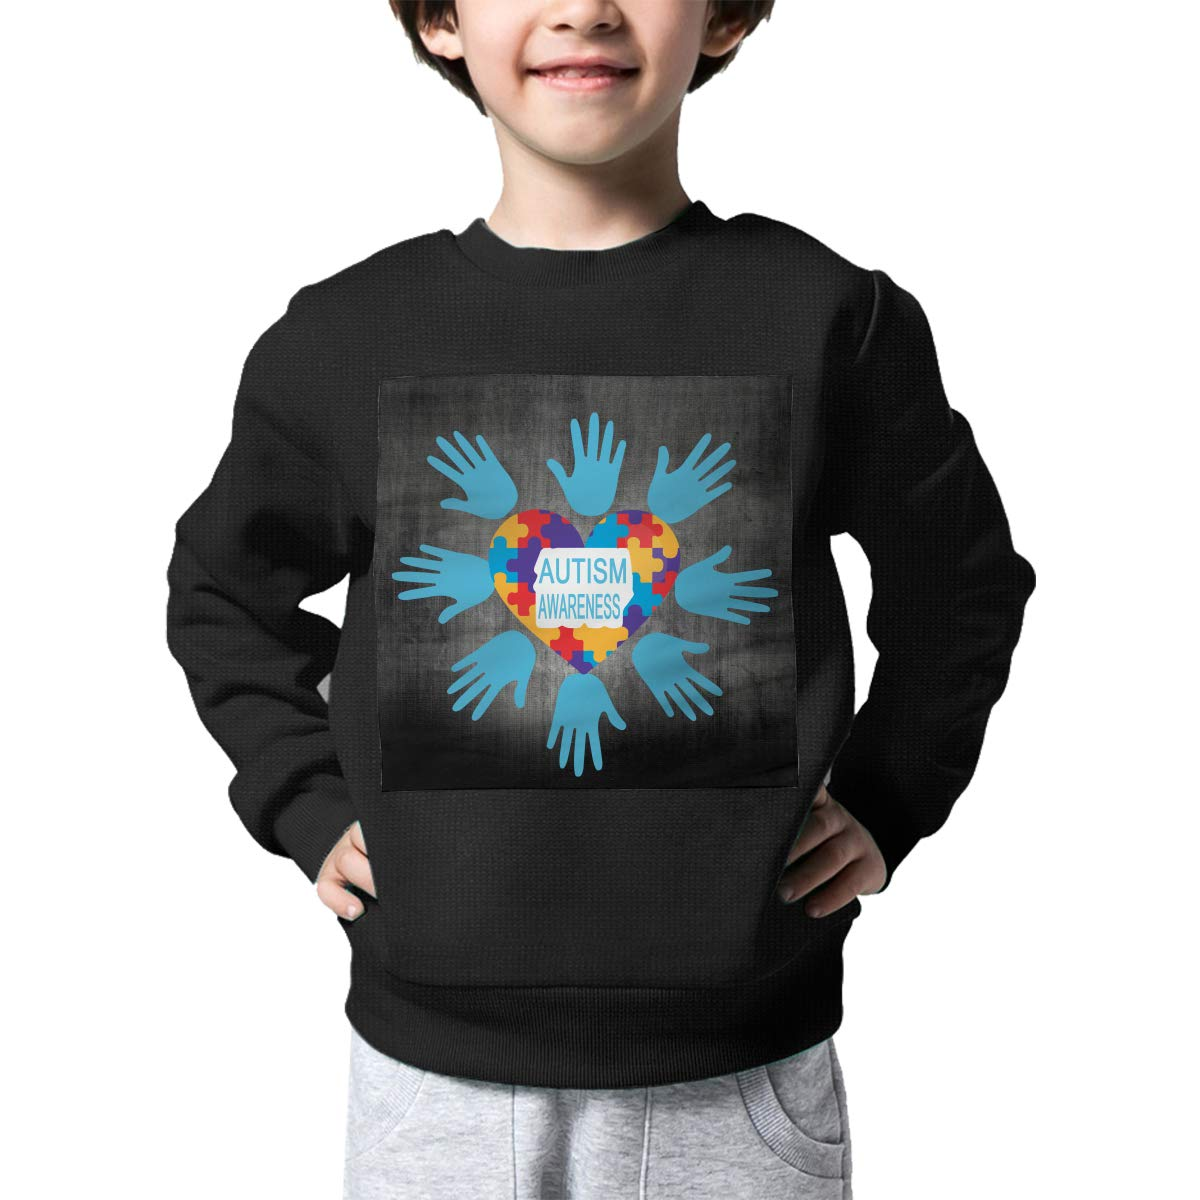 Autism Awareness Printed Baby Girls Childrens Crew Neck Sweater Long Sleeve Warm Knitted Sweater Jumper